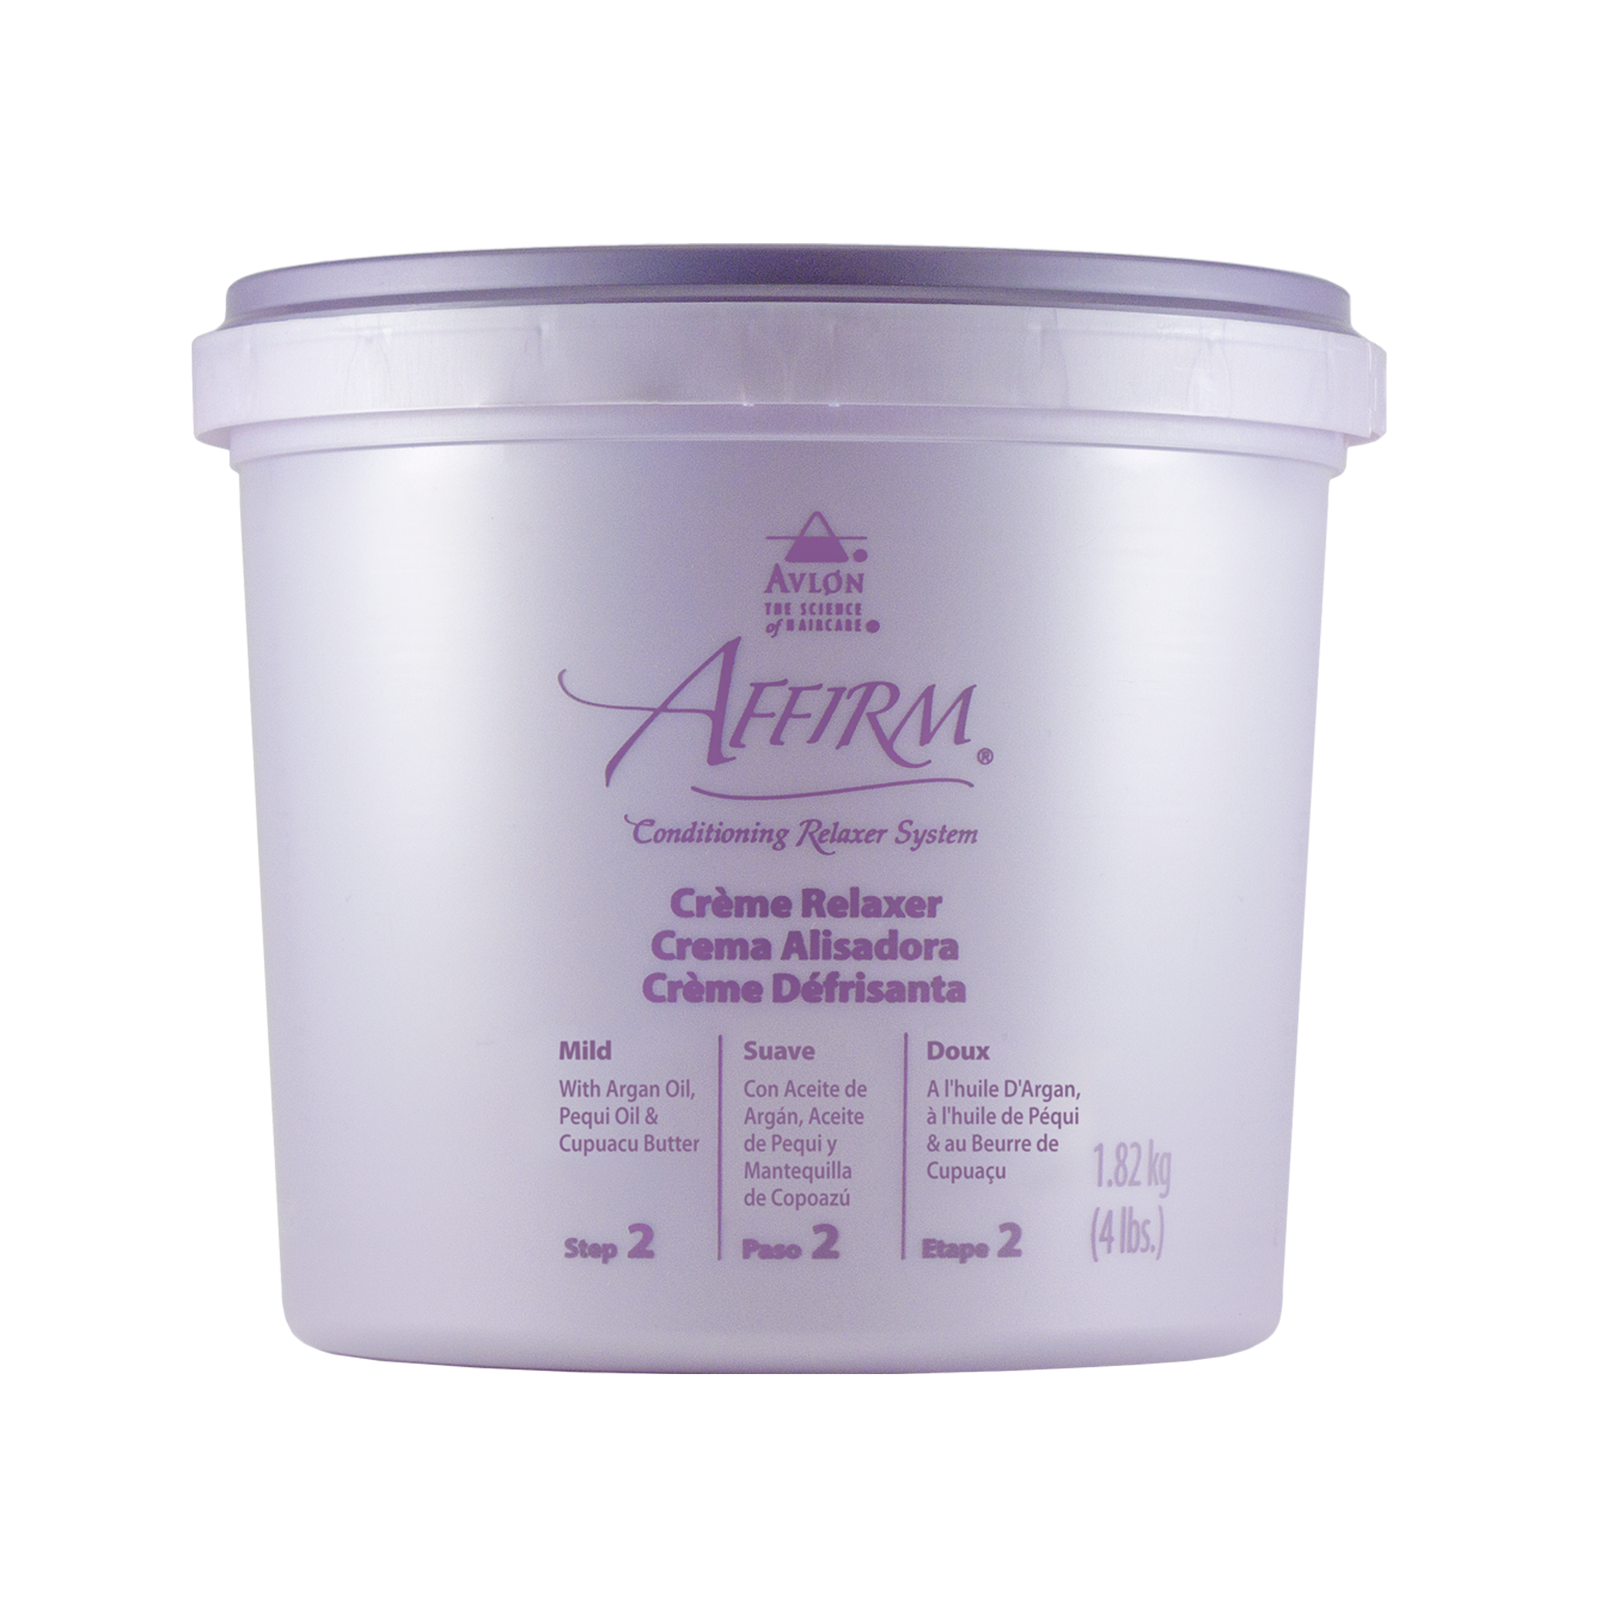 Affirm Creme Relaxer-Mild